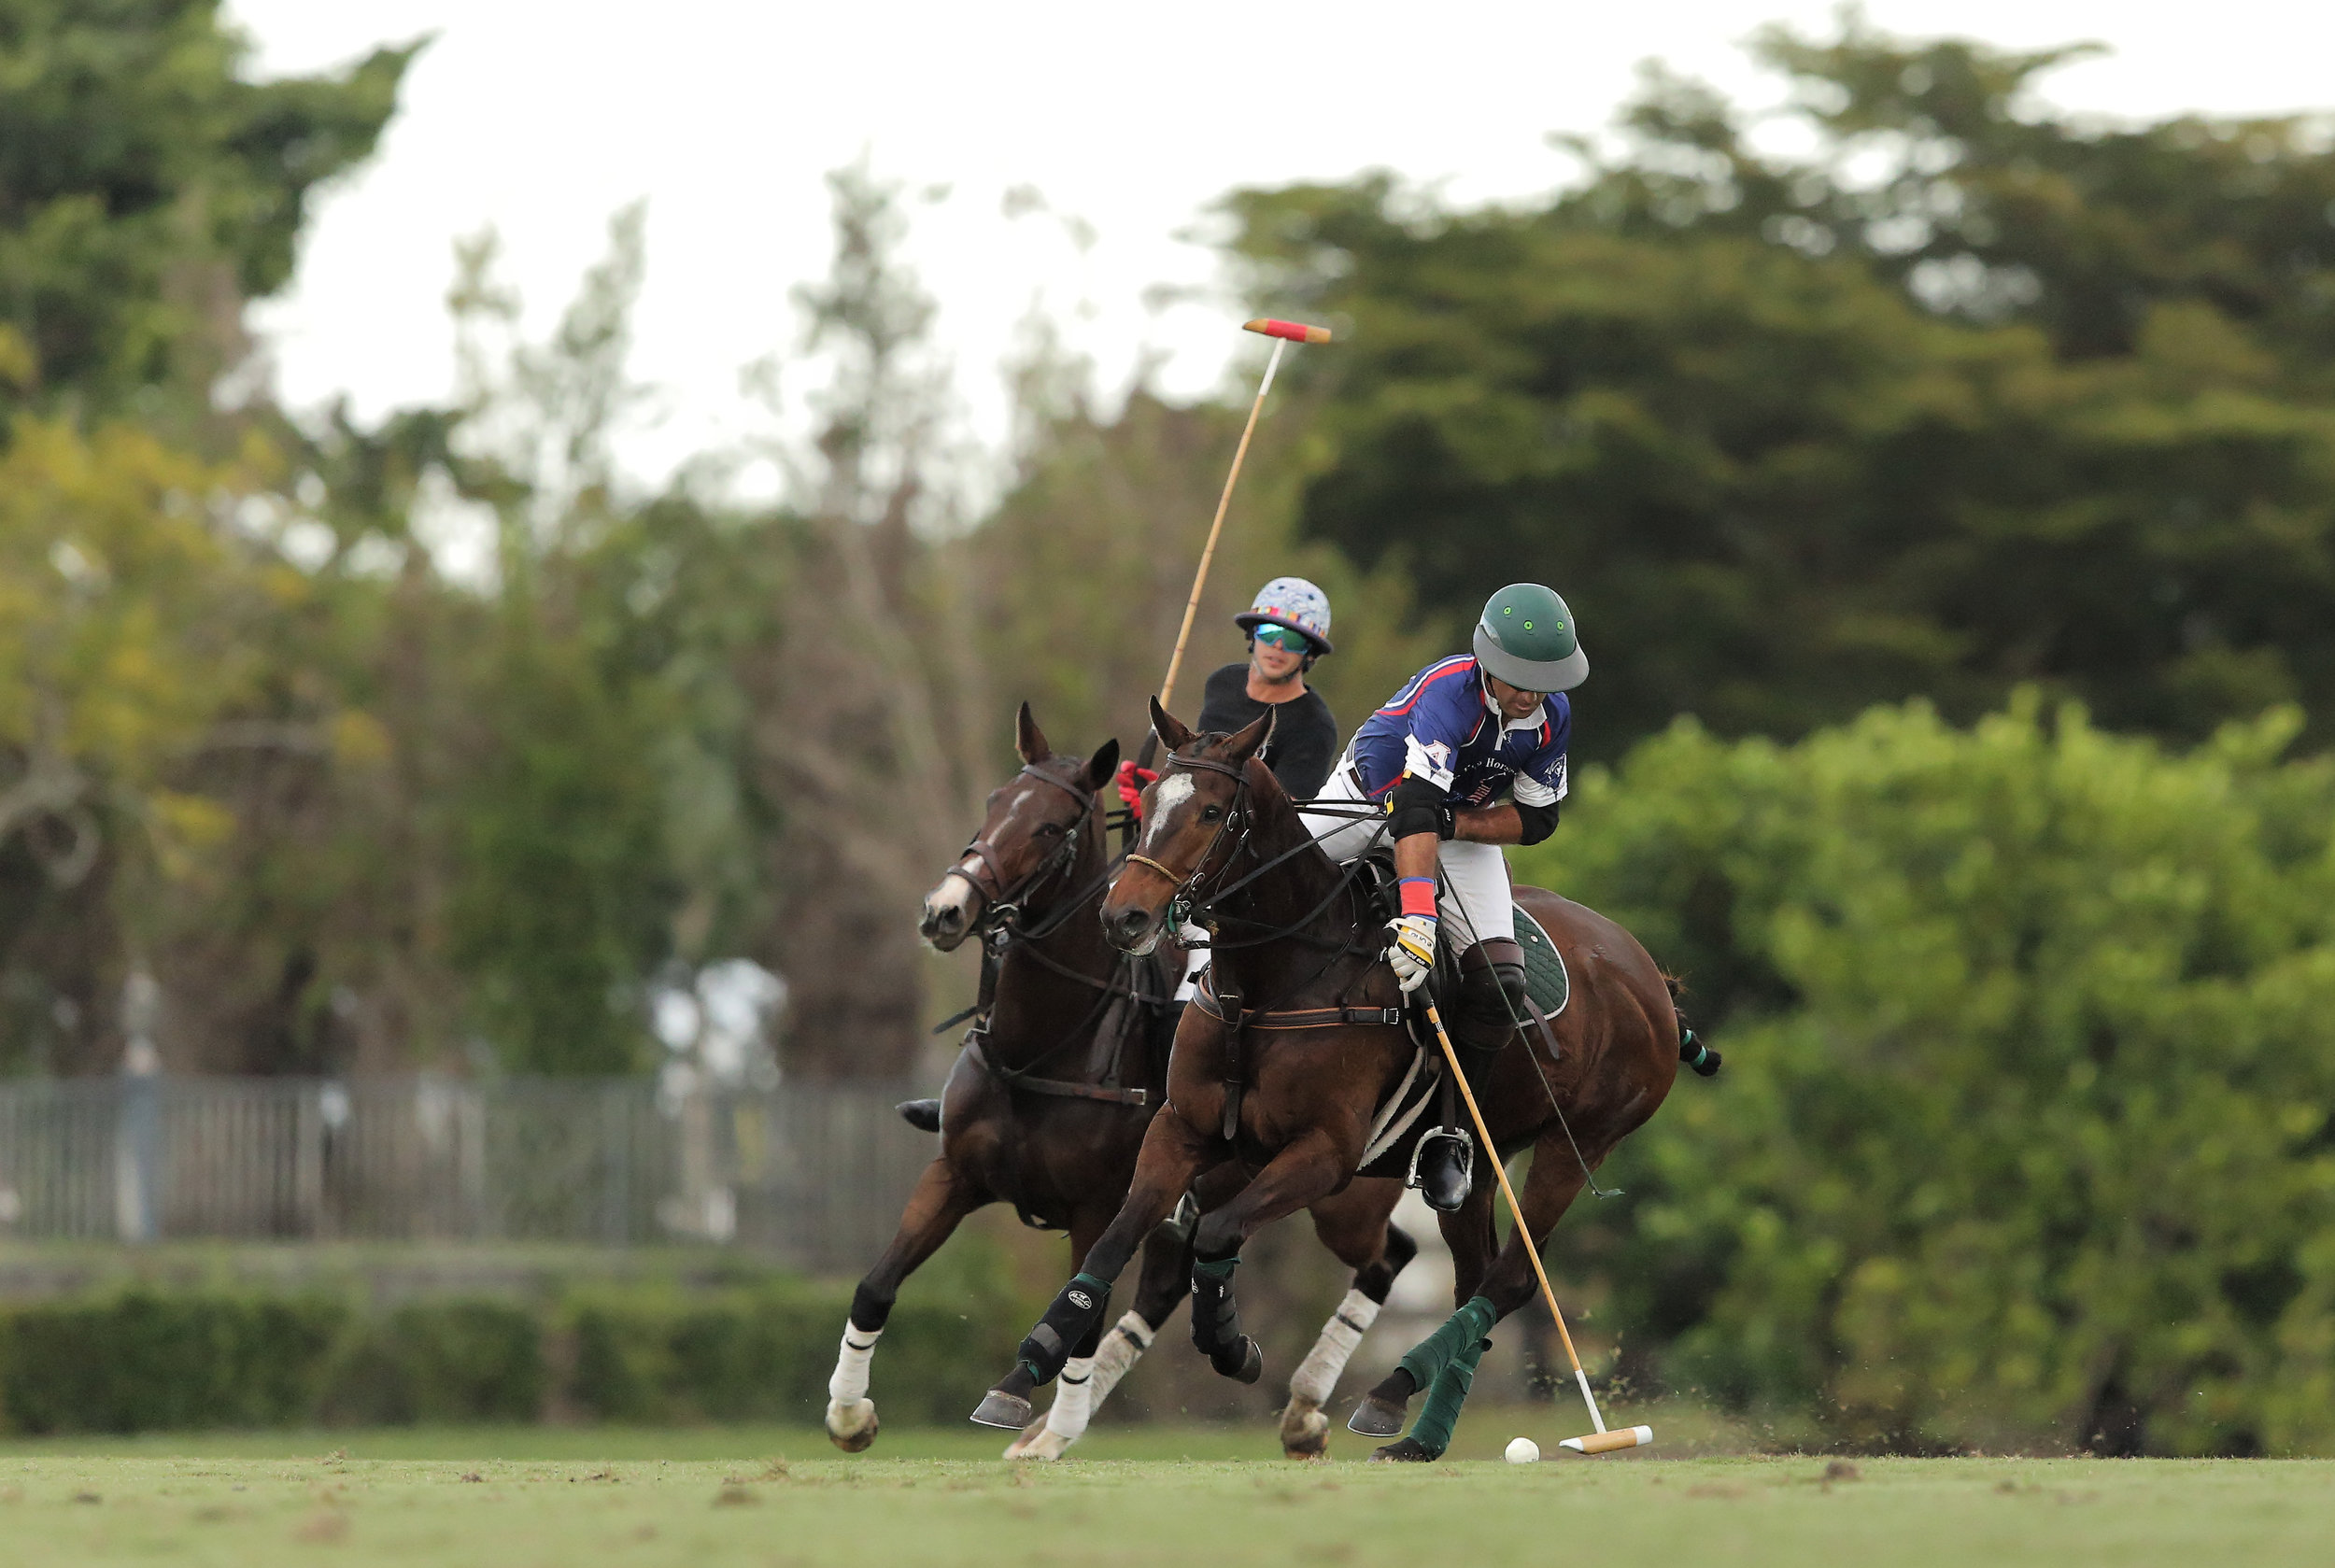 Whistle Uys of American Polo Horse p.jpg